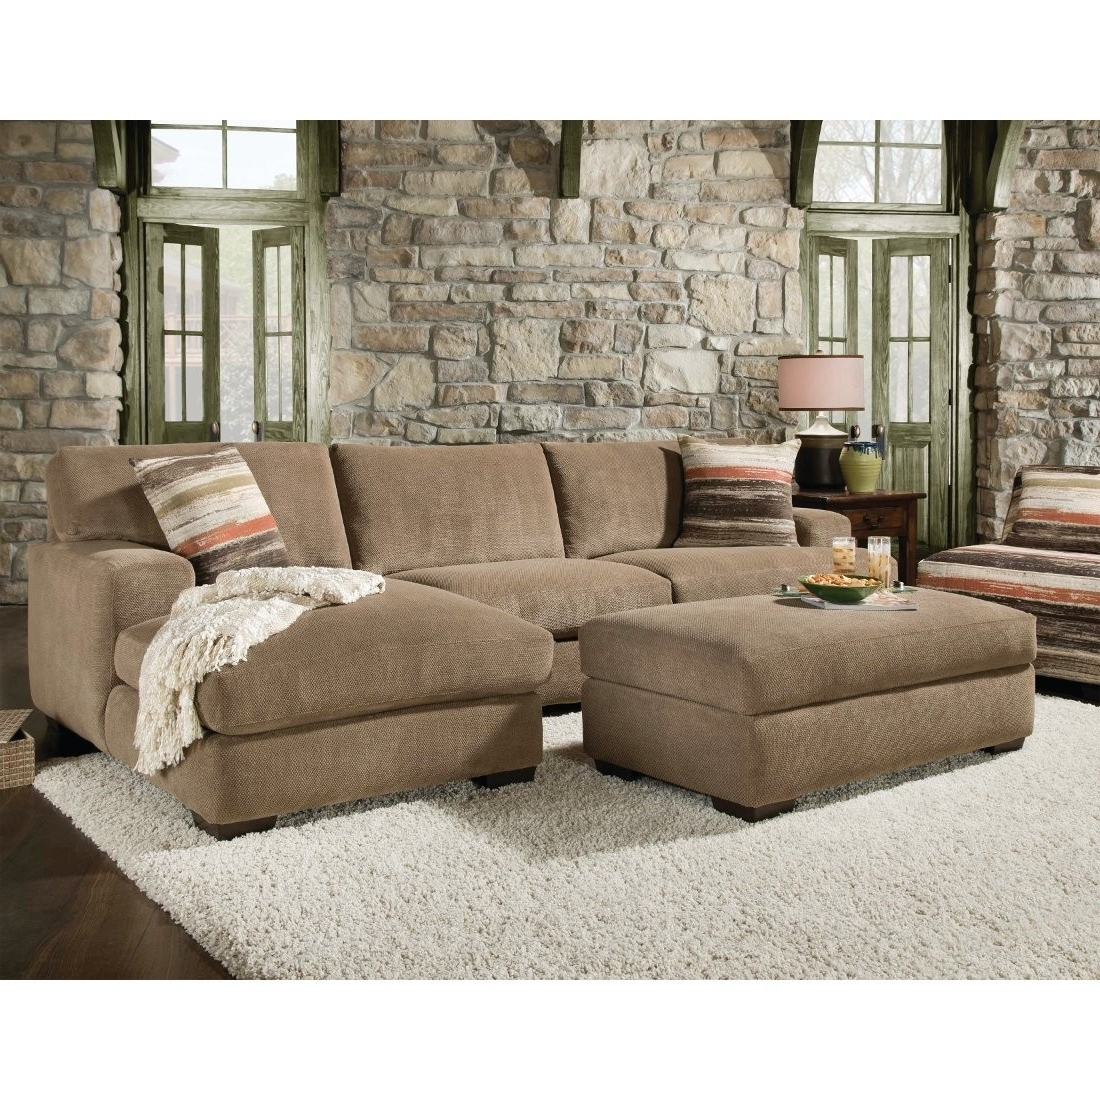 Beautiful Sectional Sofa With Chaise And Ottoman Pictures Within Well Known Leather Sectionals With Chaise (View 3 of 15)